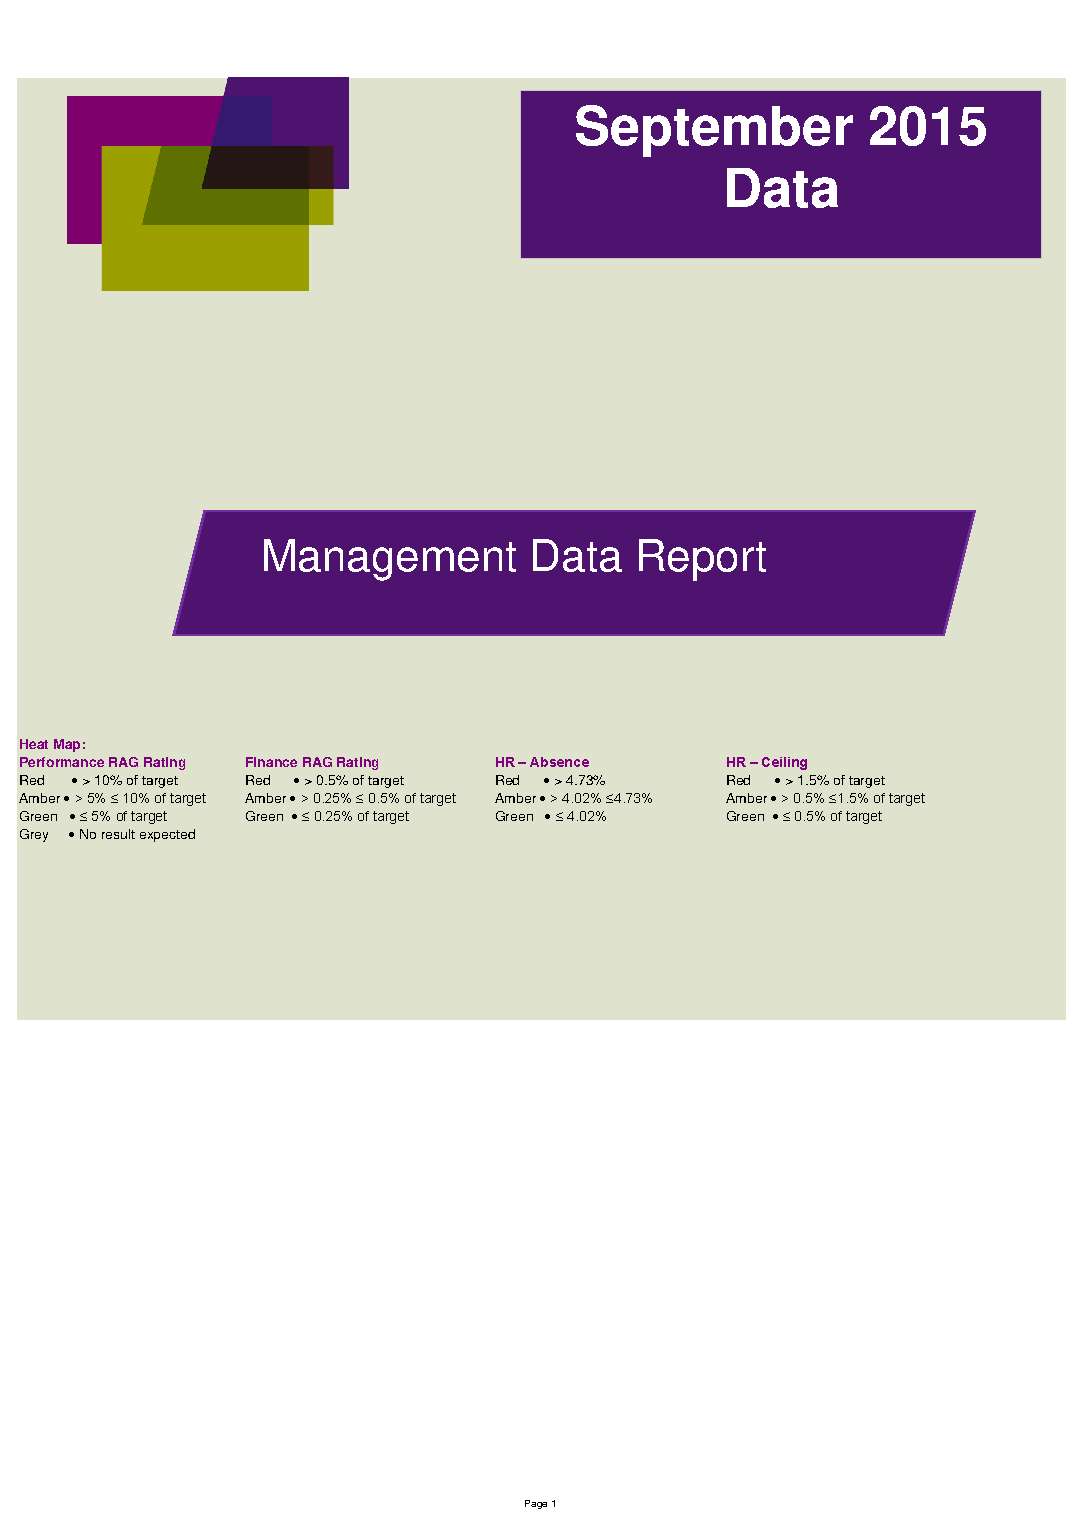 September 2015 Management Data Report front page preview